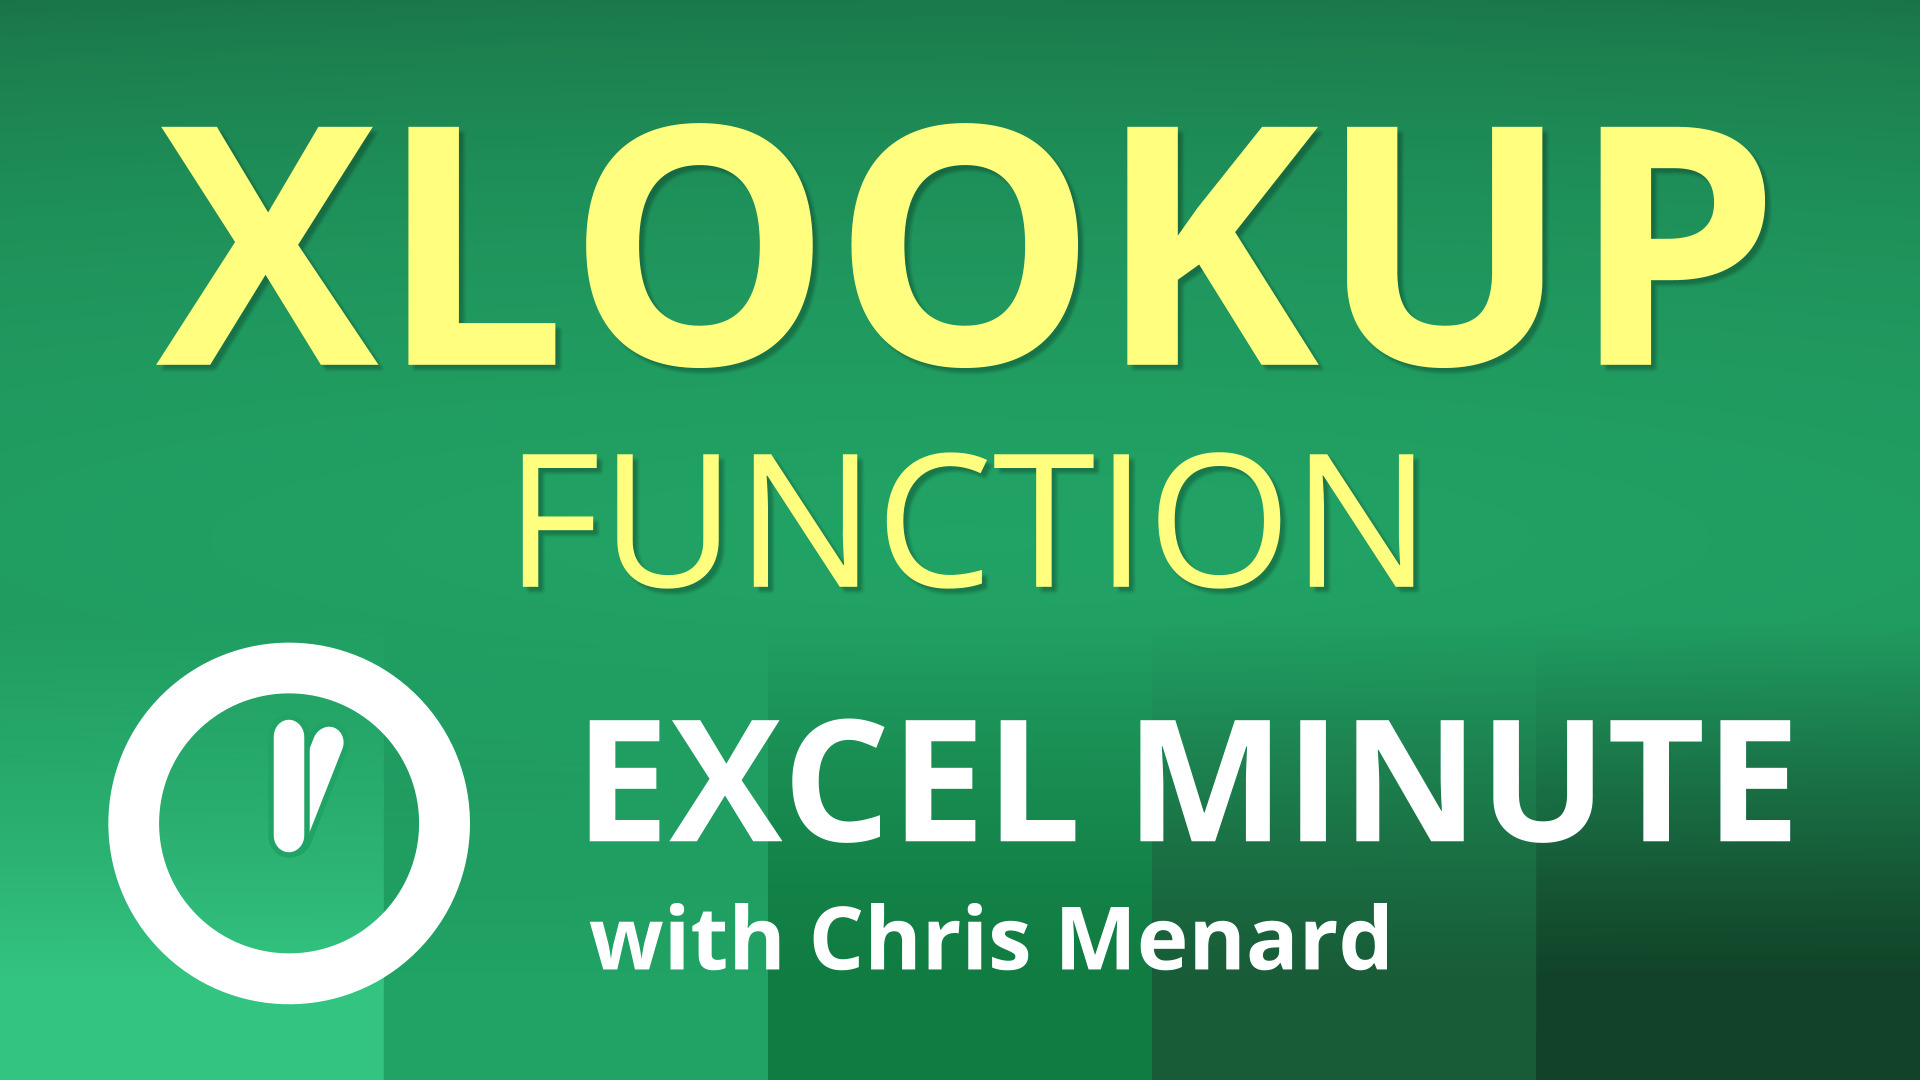 How to use XLOOKUP function in Excel